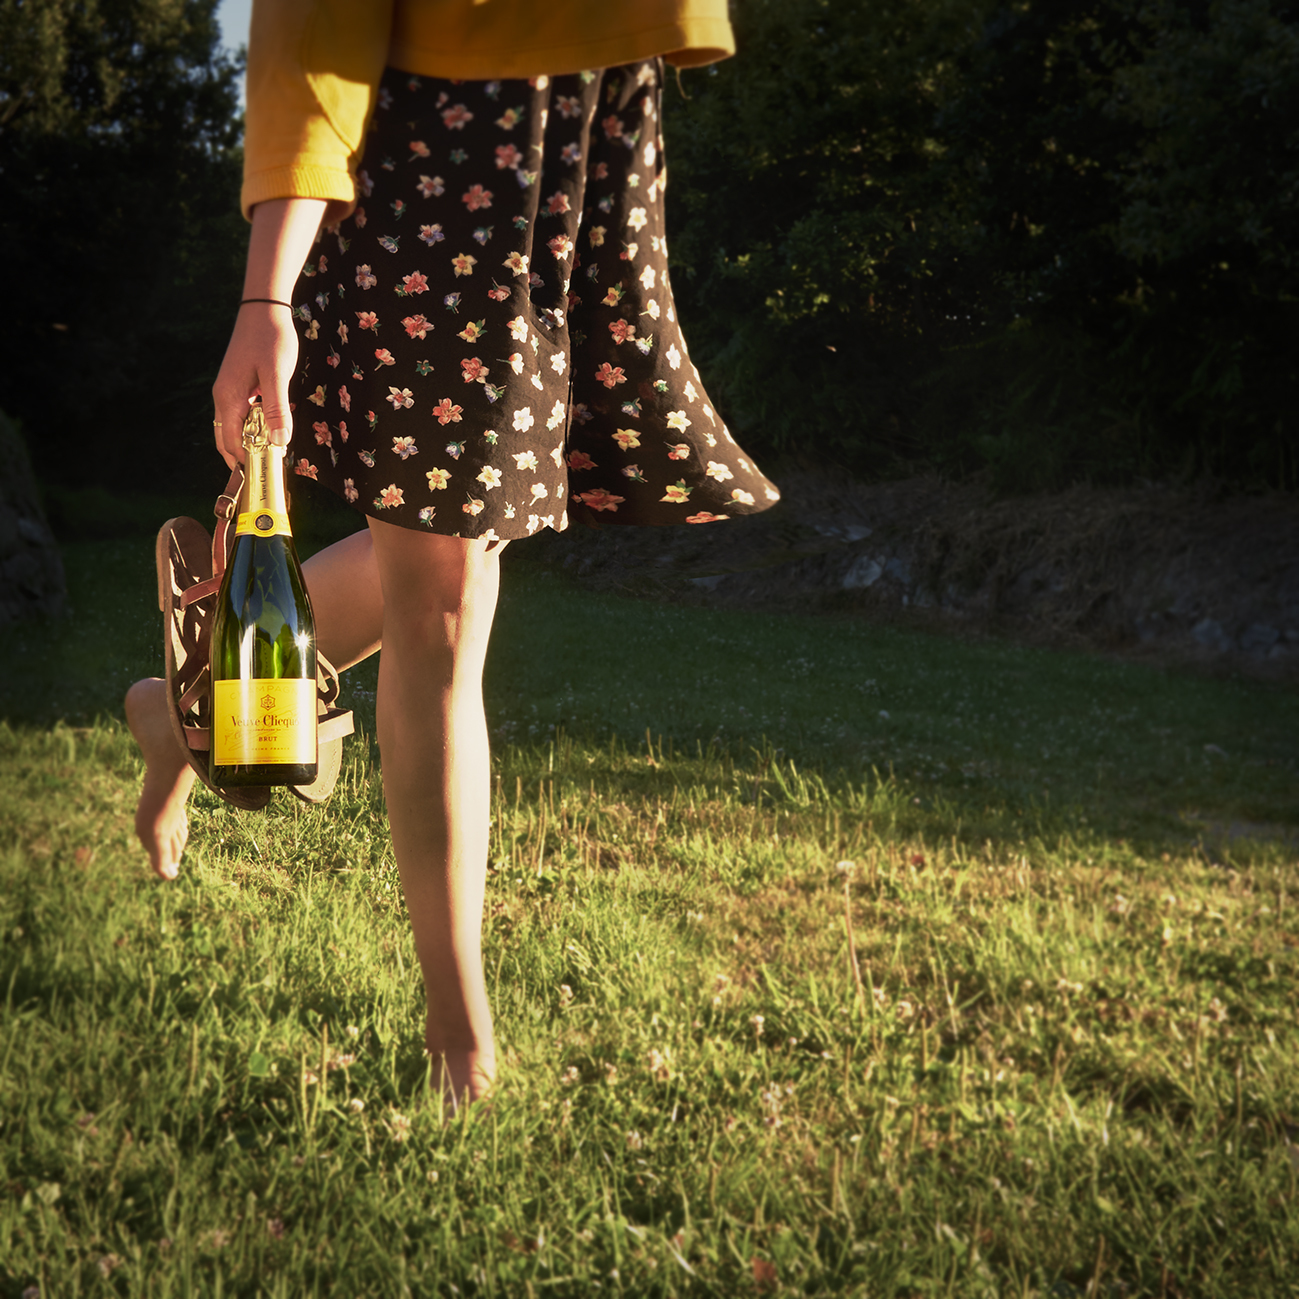 Festival tipple: Sup Veuve Clicquot Champagne at Wilderness